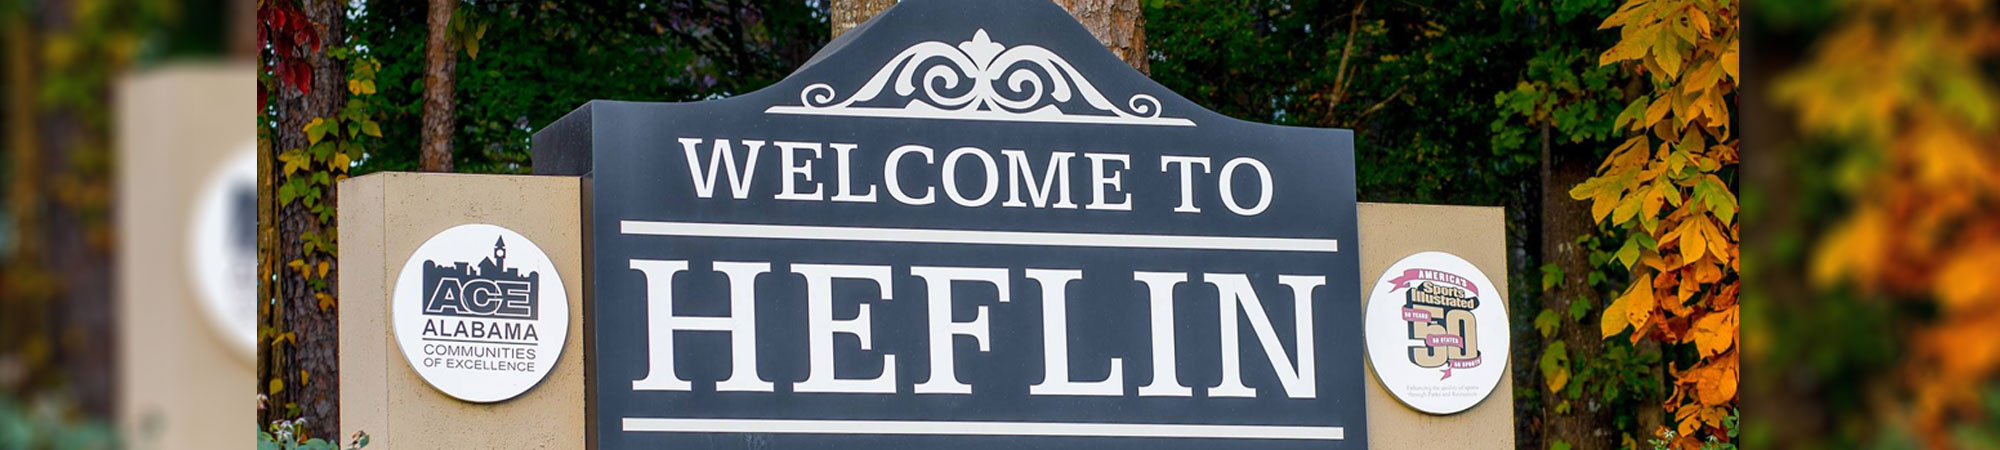 welcome to Heflin sign